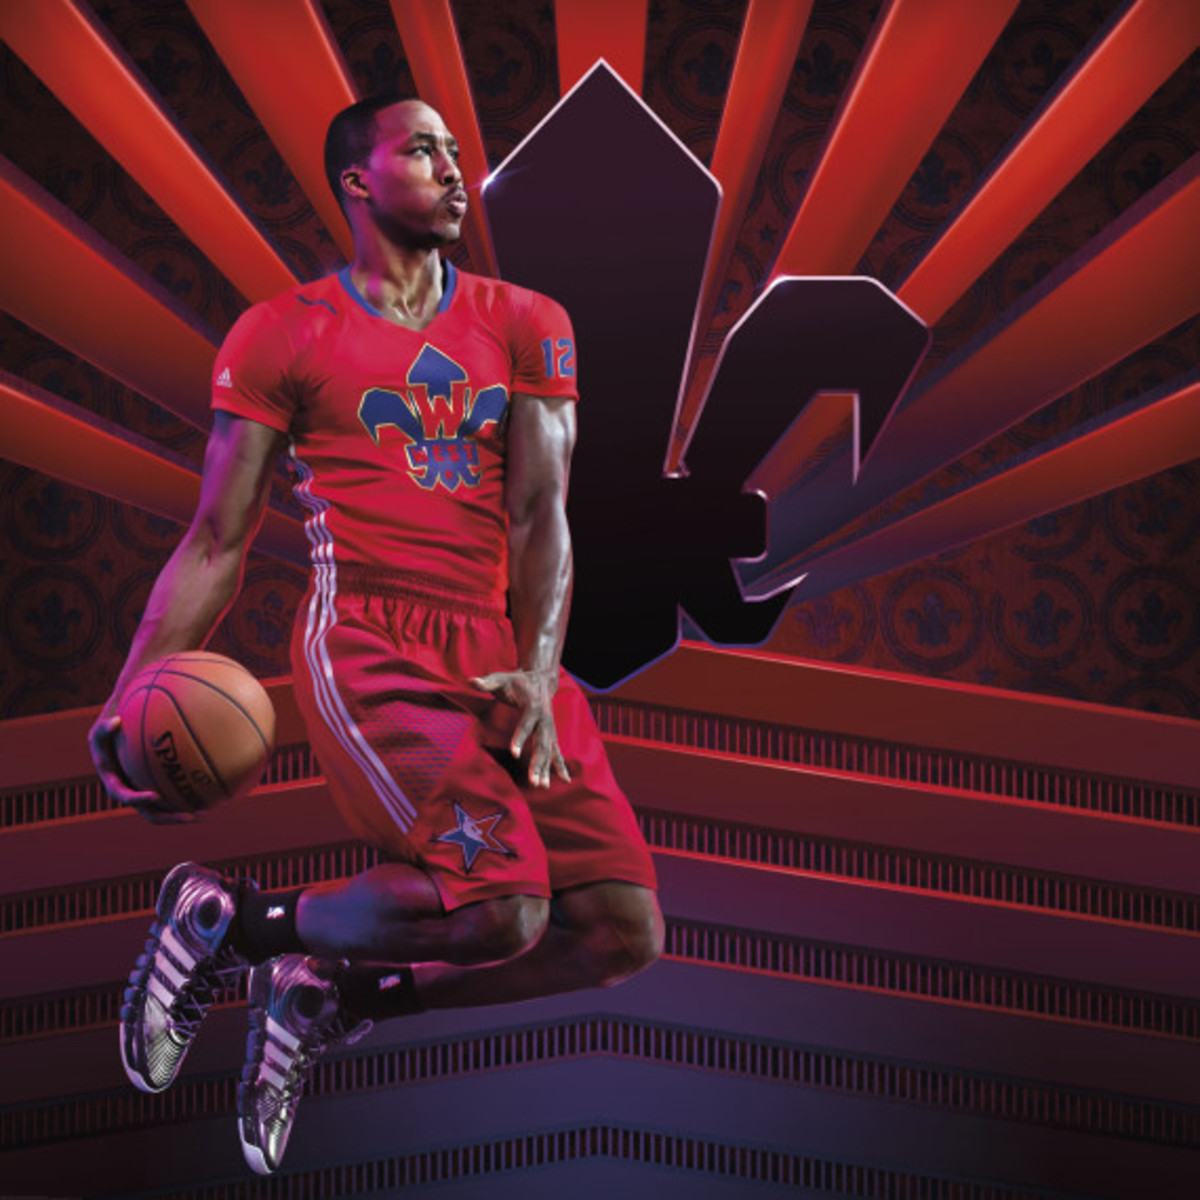 adidas Basketball Dwight Howard 4 - NBA All-Star Game Edition - 2